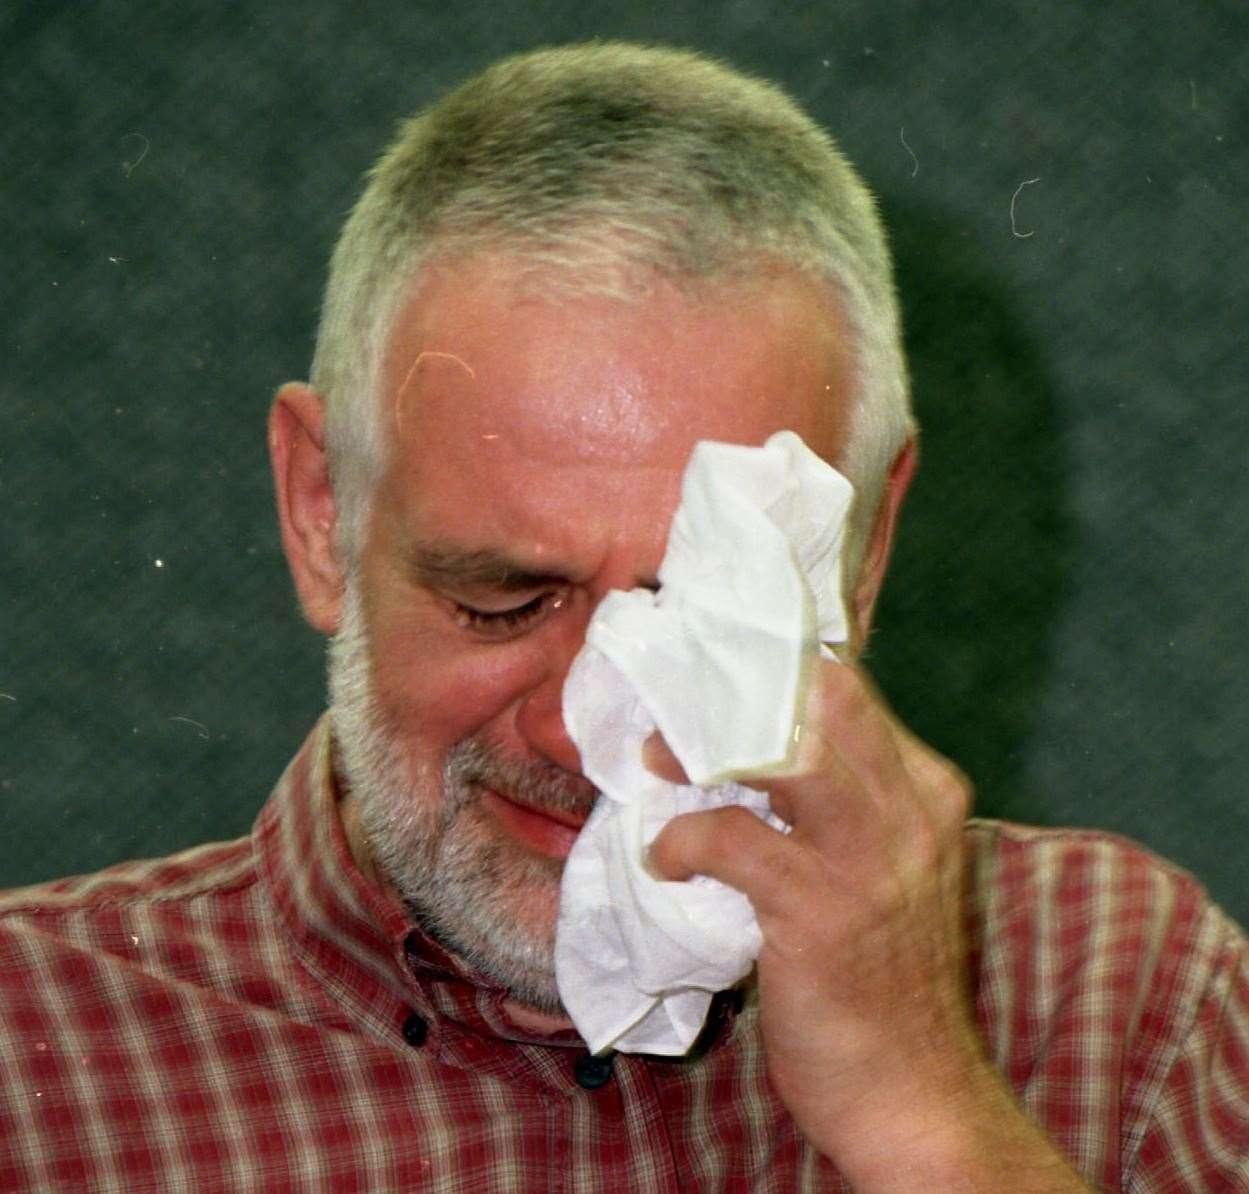 Peter Streader, the father of Claire Streader, fight back tears during a police appeal for information